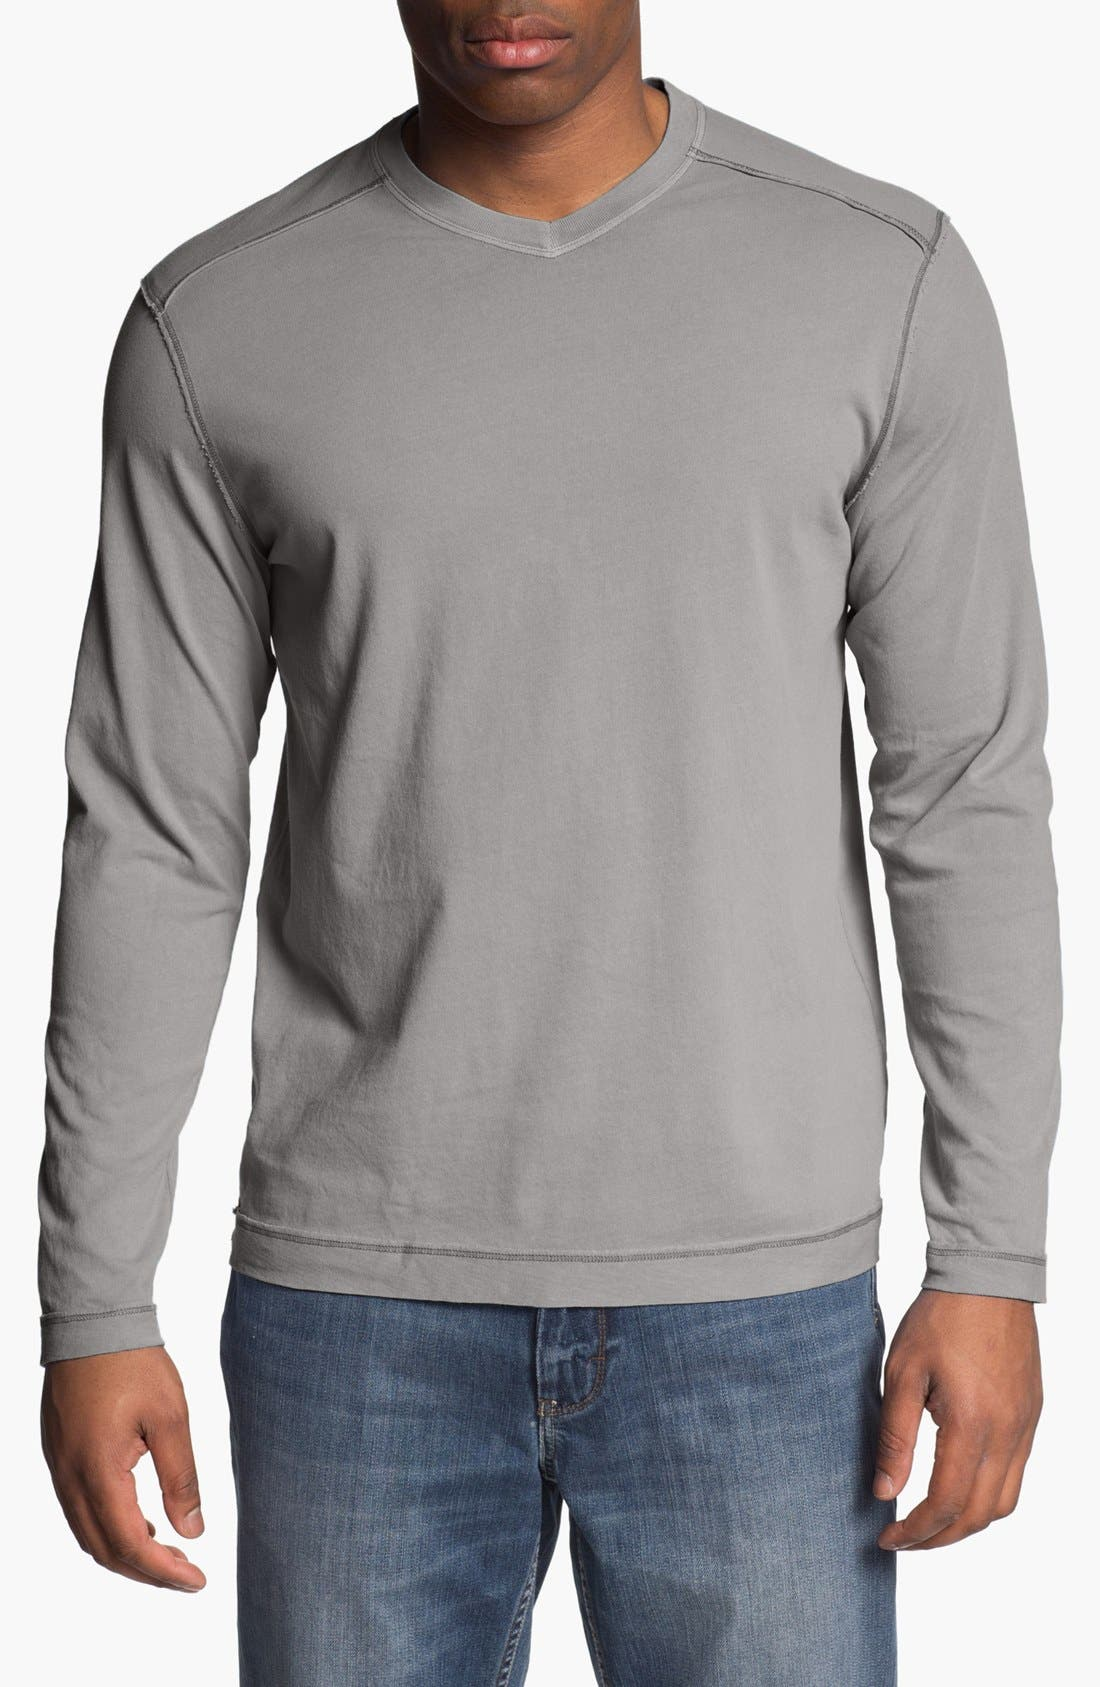 Main Image - Tommy Bahama Denim 'Cohen' Island Modern Fit Long Sleeve V-Neck T-Shirt